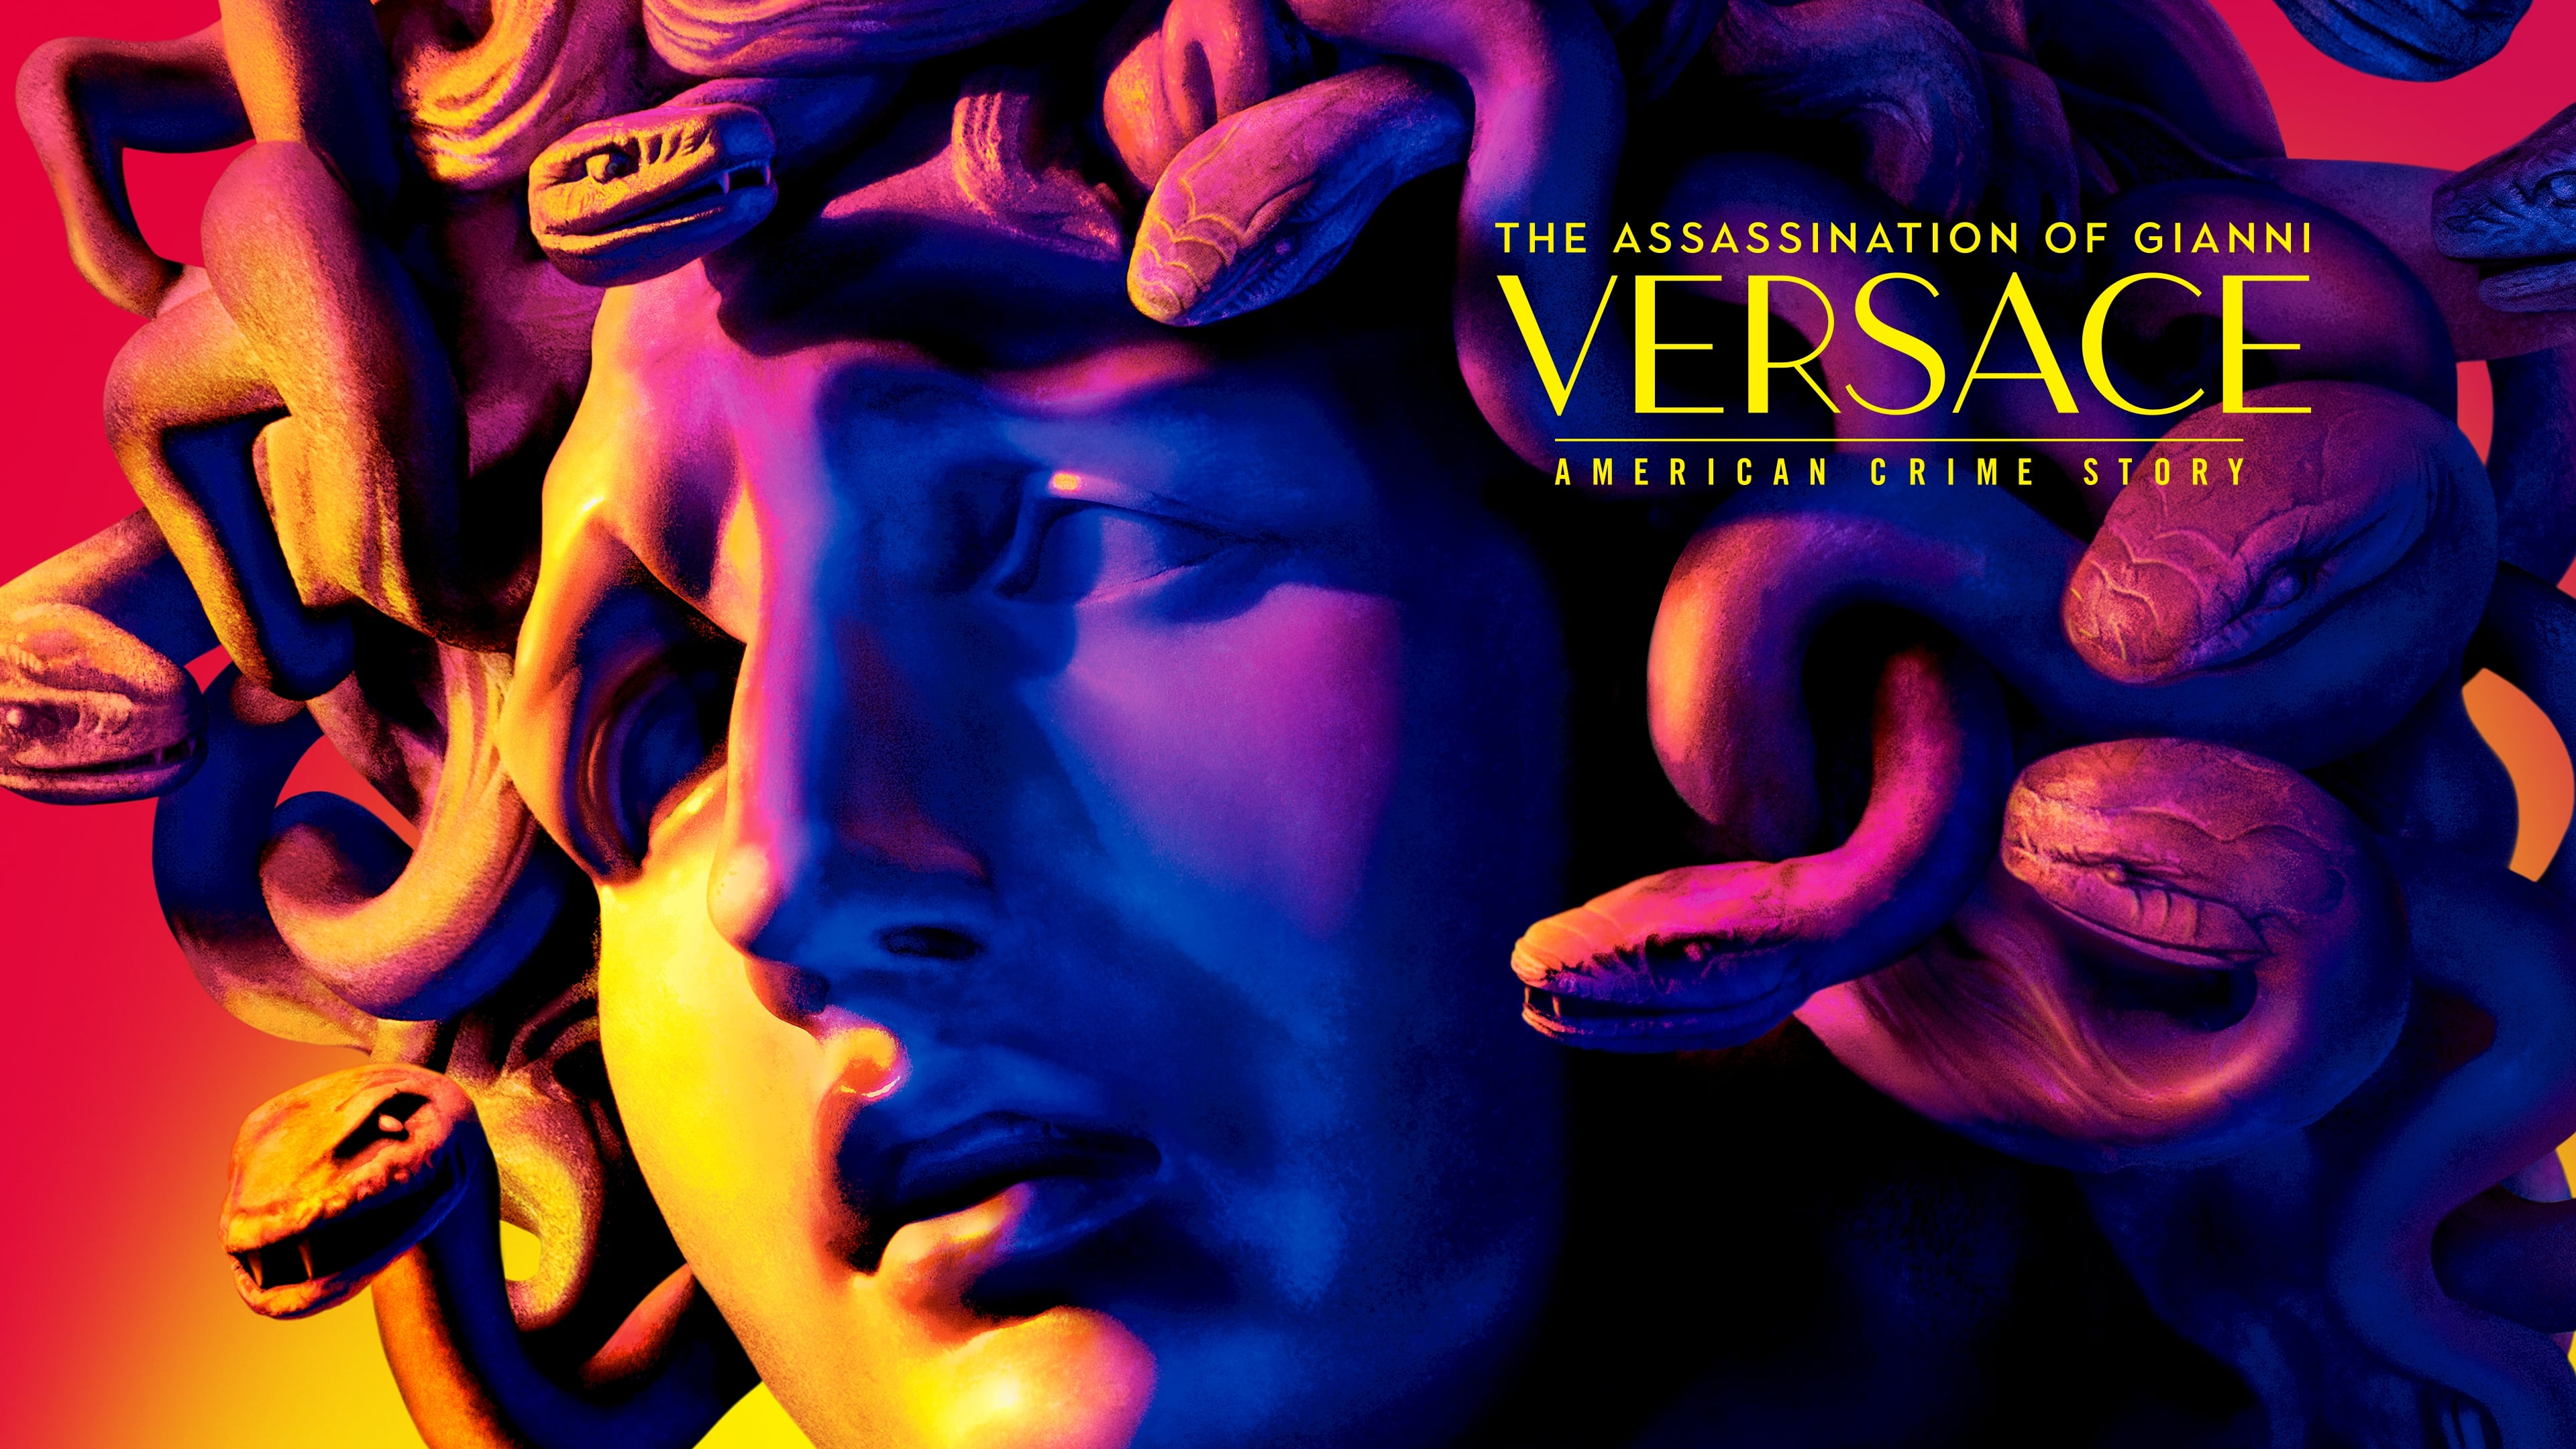 American Crime Story - The Assassination of Gianni Versace